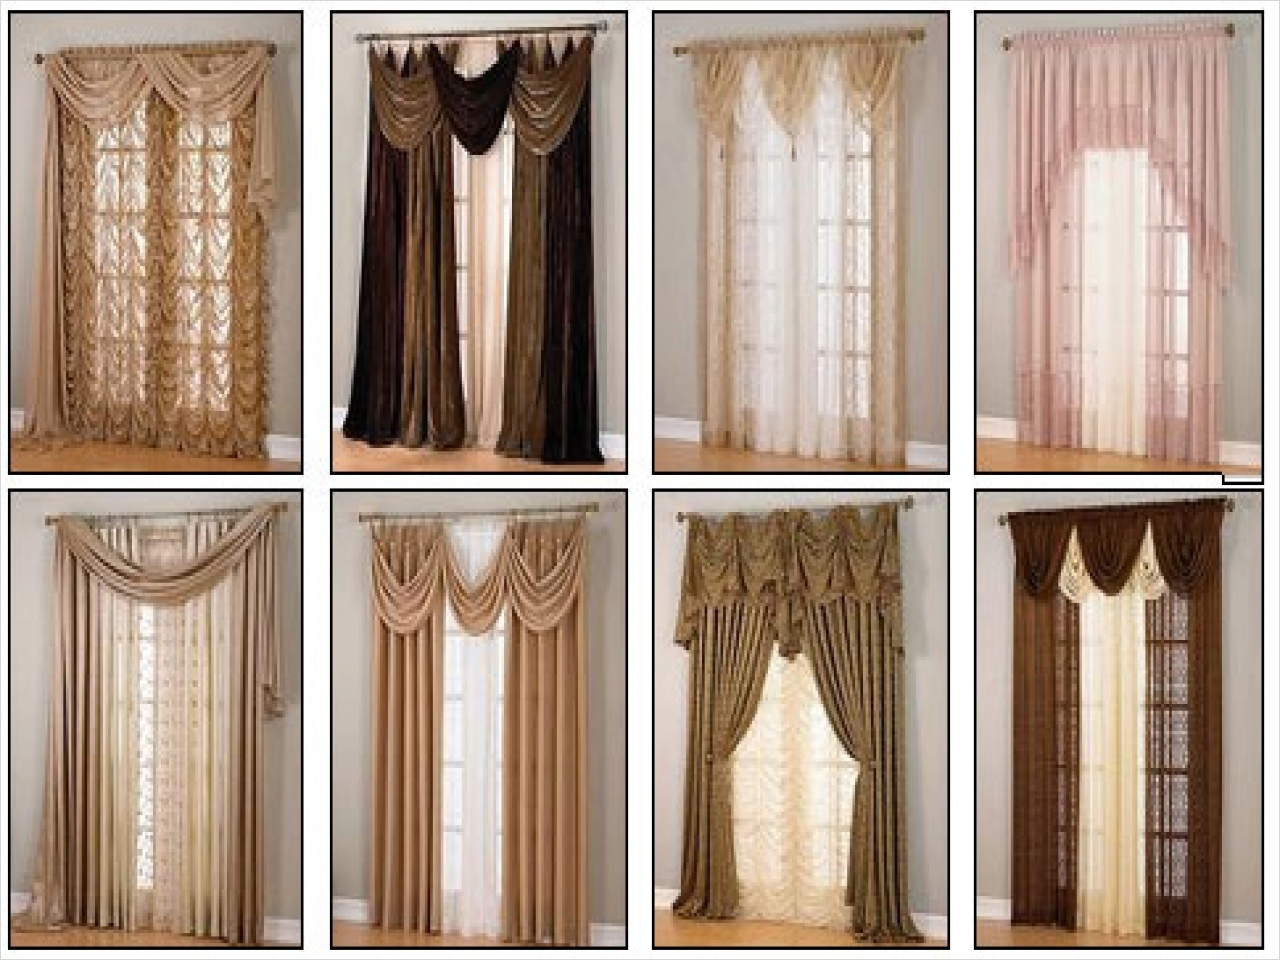 41 Perfect Farmhouse Country Kitchen Curtain Valances 12 Light Blocking Drapes Farmhouse Country Kitchen Curtain Valances Country Style Curtains and 1